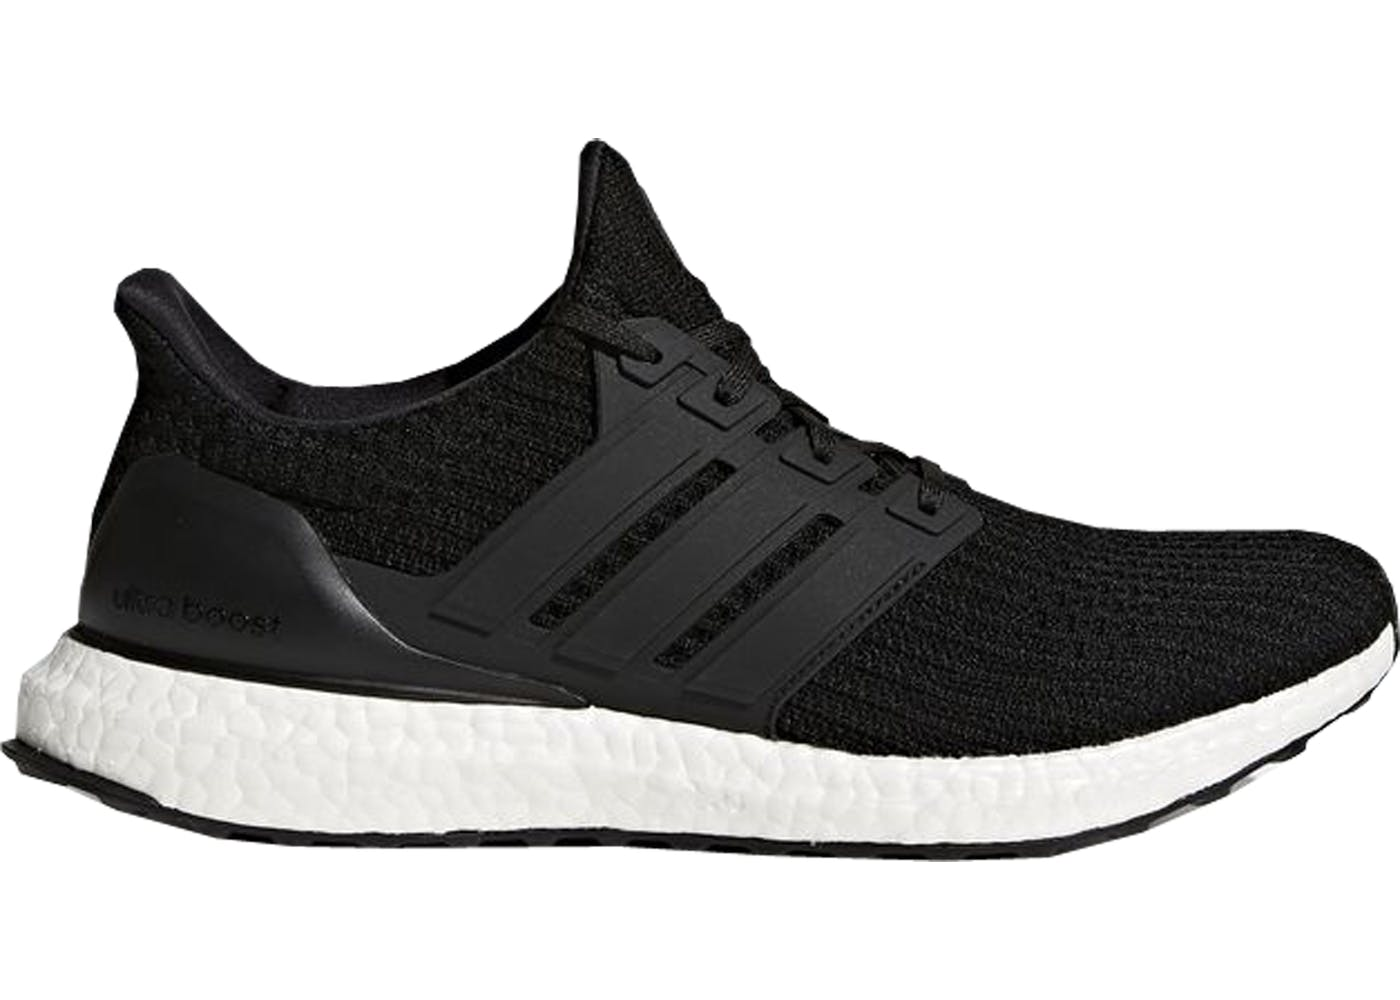 adidas ultra boost 4 0 core black. Black Bedroom Furniture Sets. Home Design Ideas